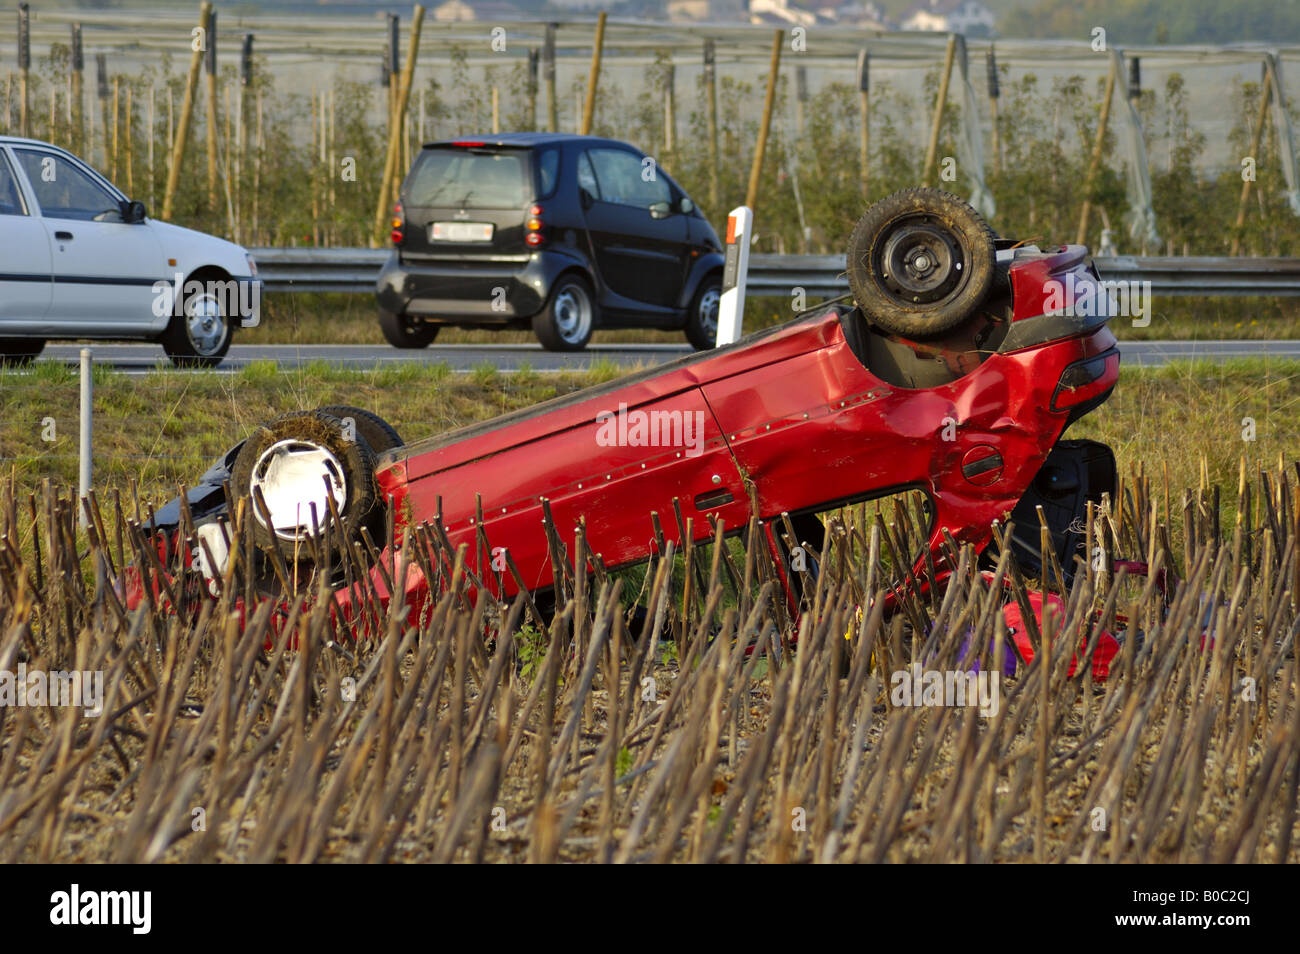 Car wreck - Stock Image